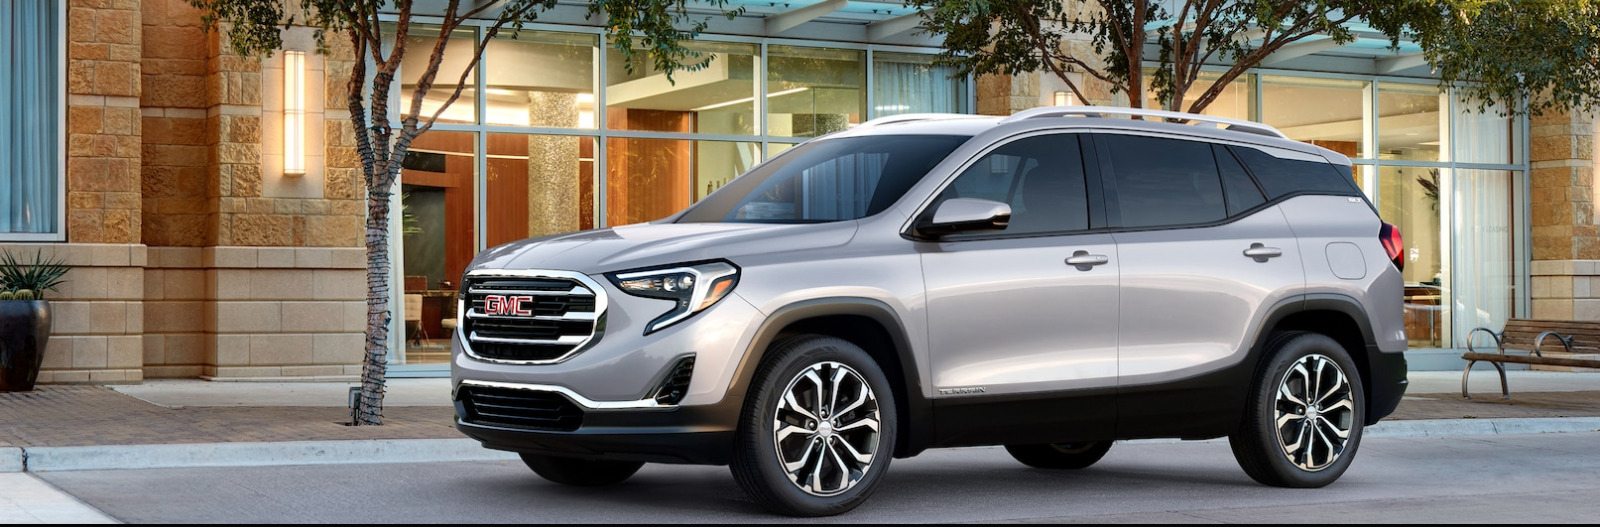 2017 GMC Terrain for Sale near Lansing, MI